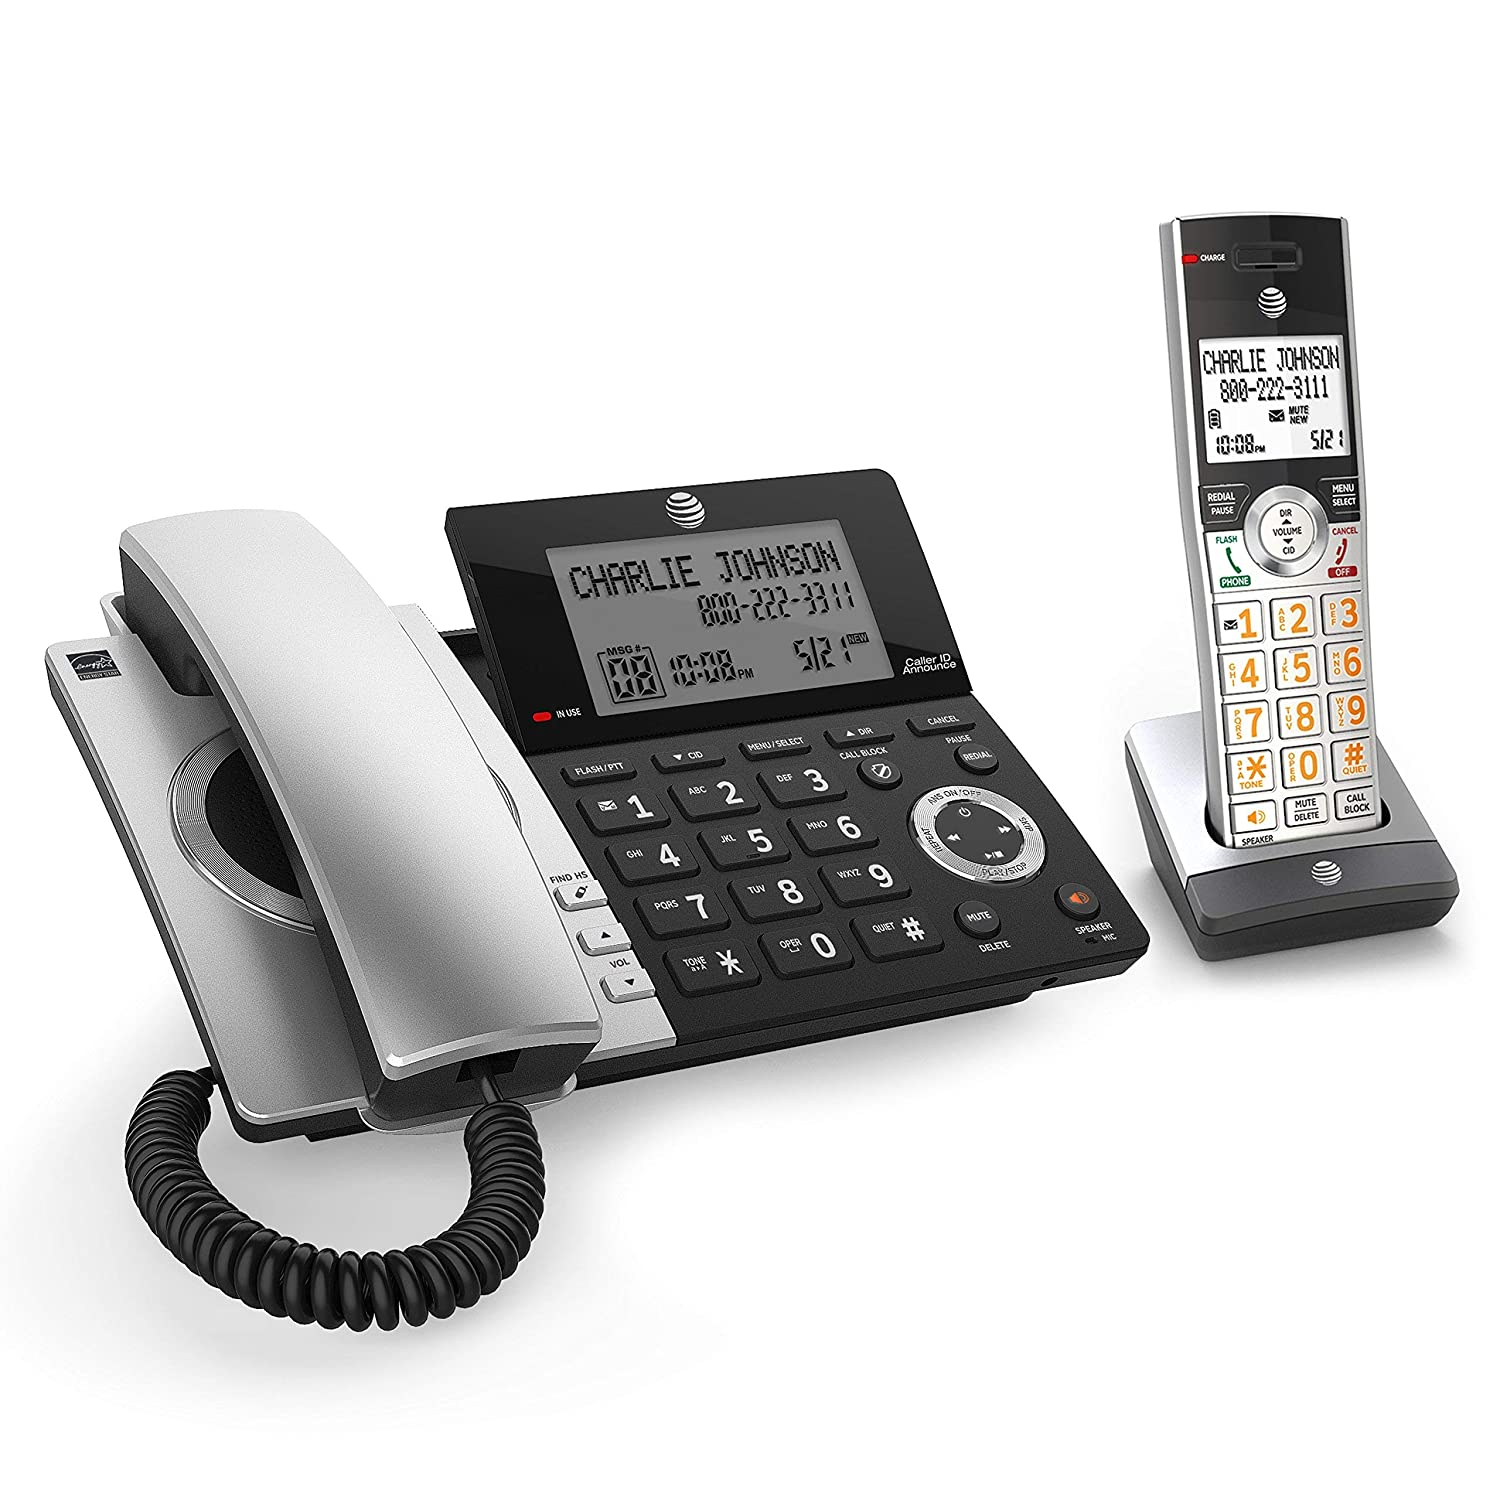 AT&T CL84107 DECT 6.0 Expandable Corded/Cordless Phone with Smart Call Blocker, Black/Silver with 1 Handset (Renewed)